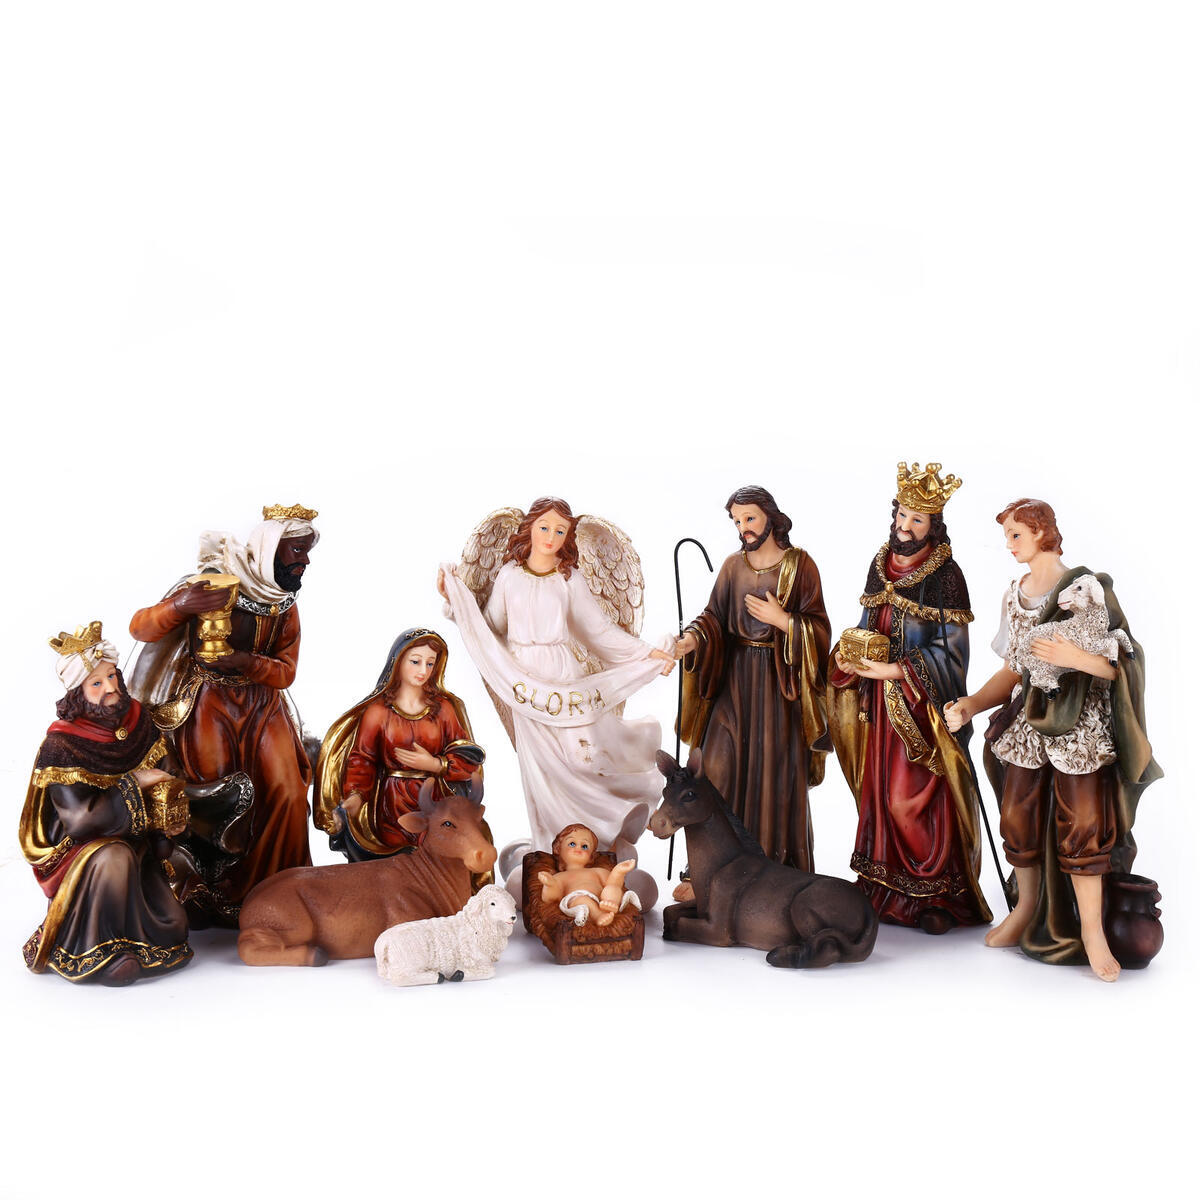 Nativity Set 8.5 inch Resin Stone 11 Figurines, Catholic Gift Holy Family Christmas Decoration Nativity Scene